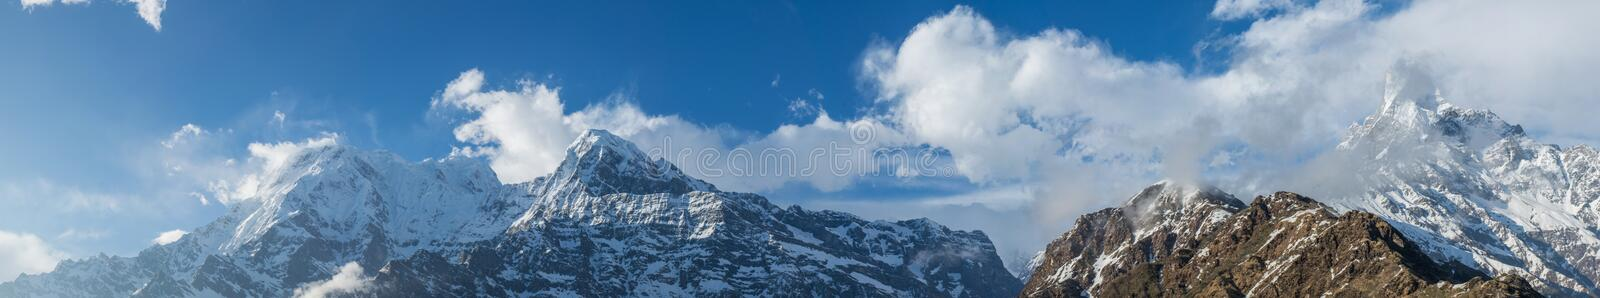 Epic panoramic landscape view of beautiful Himalaya mountains covered with snow at Mardi Himal trekking area. In Nepal stock photography